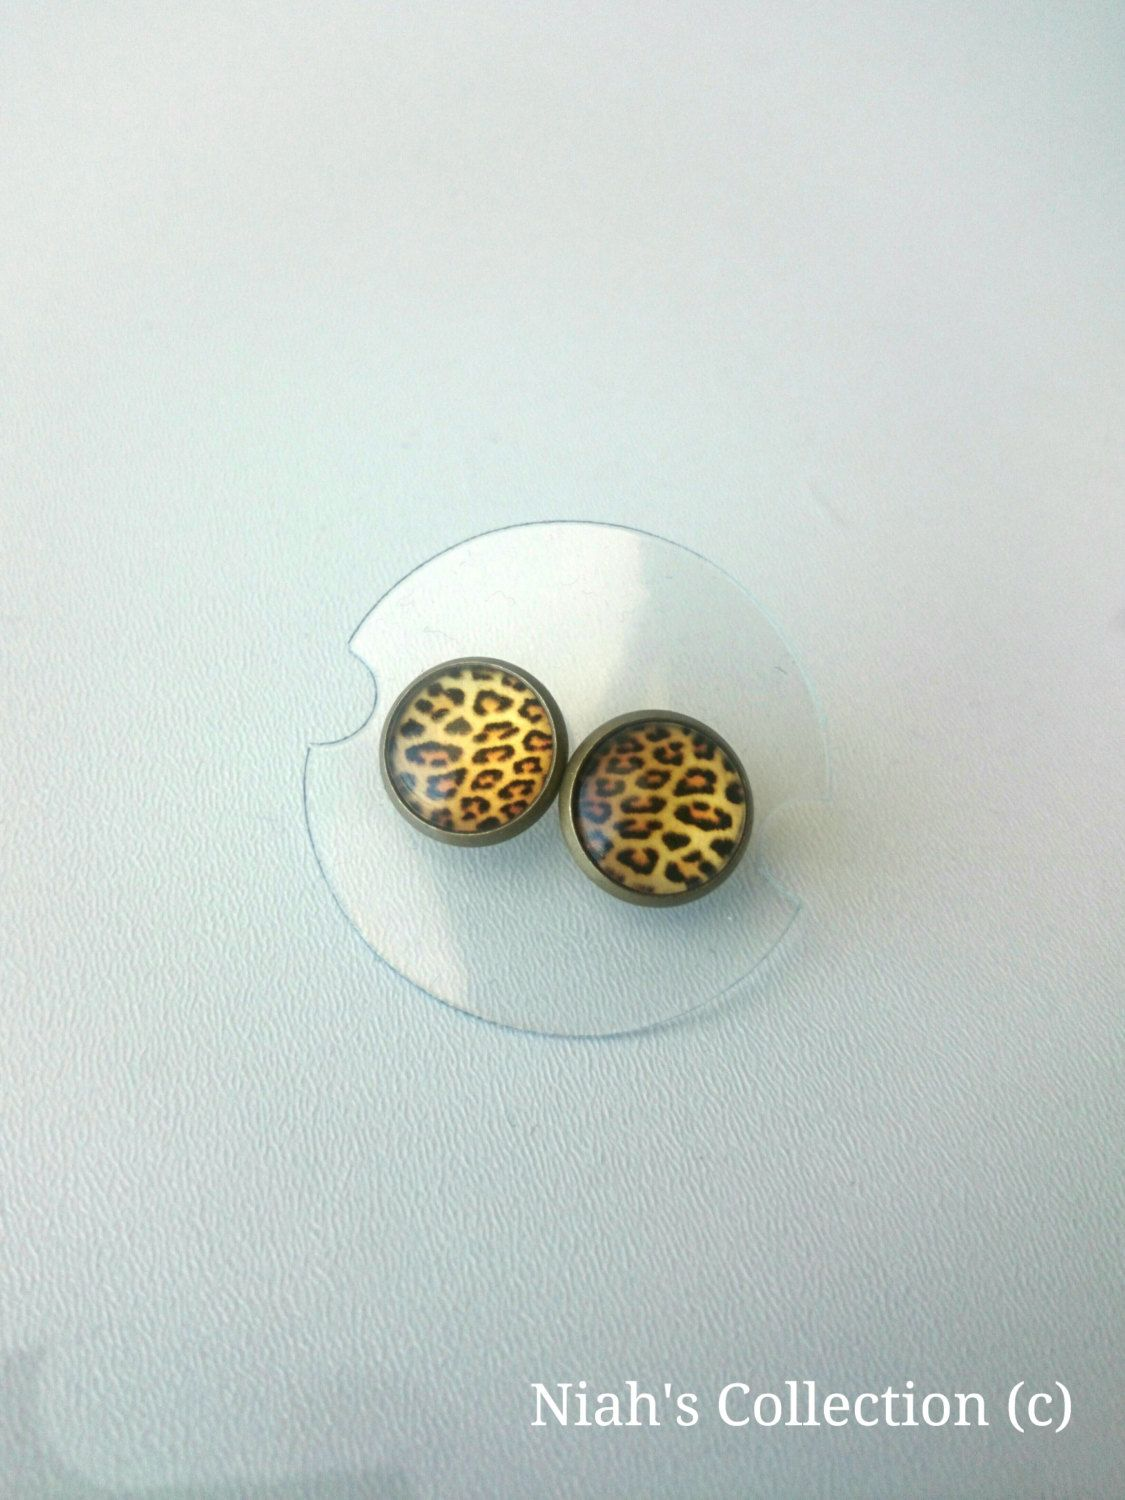 Small Leopard Print Stud Earrings Antique Bronze Resin Domed Glass Niahscollection Animal Print by NiahsCollection on Etsy